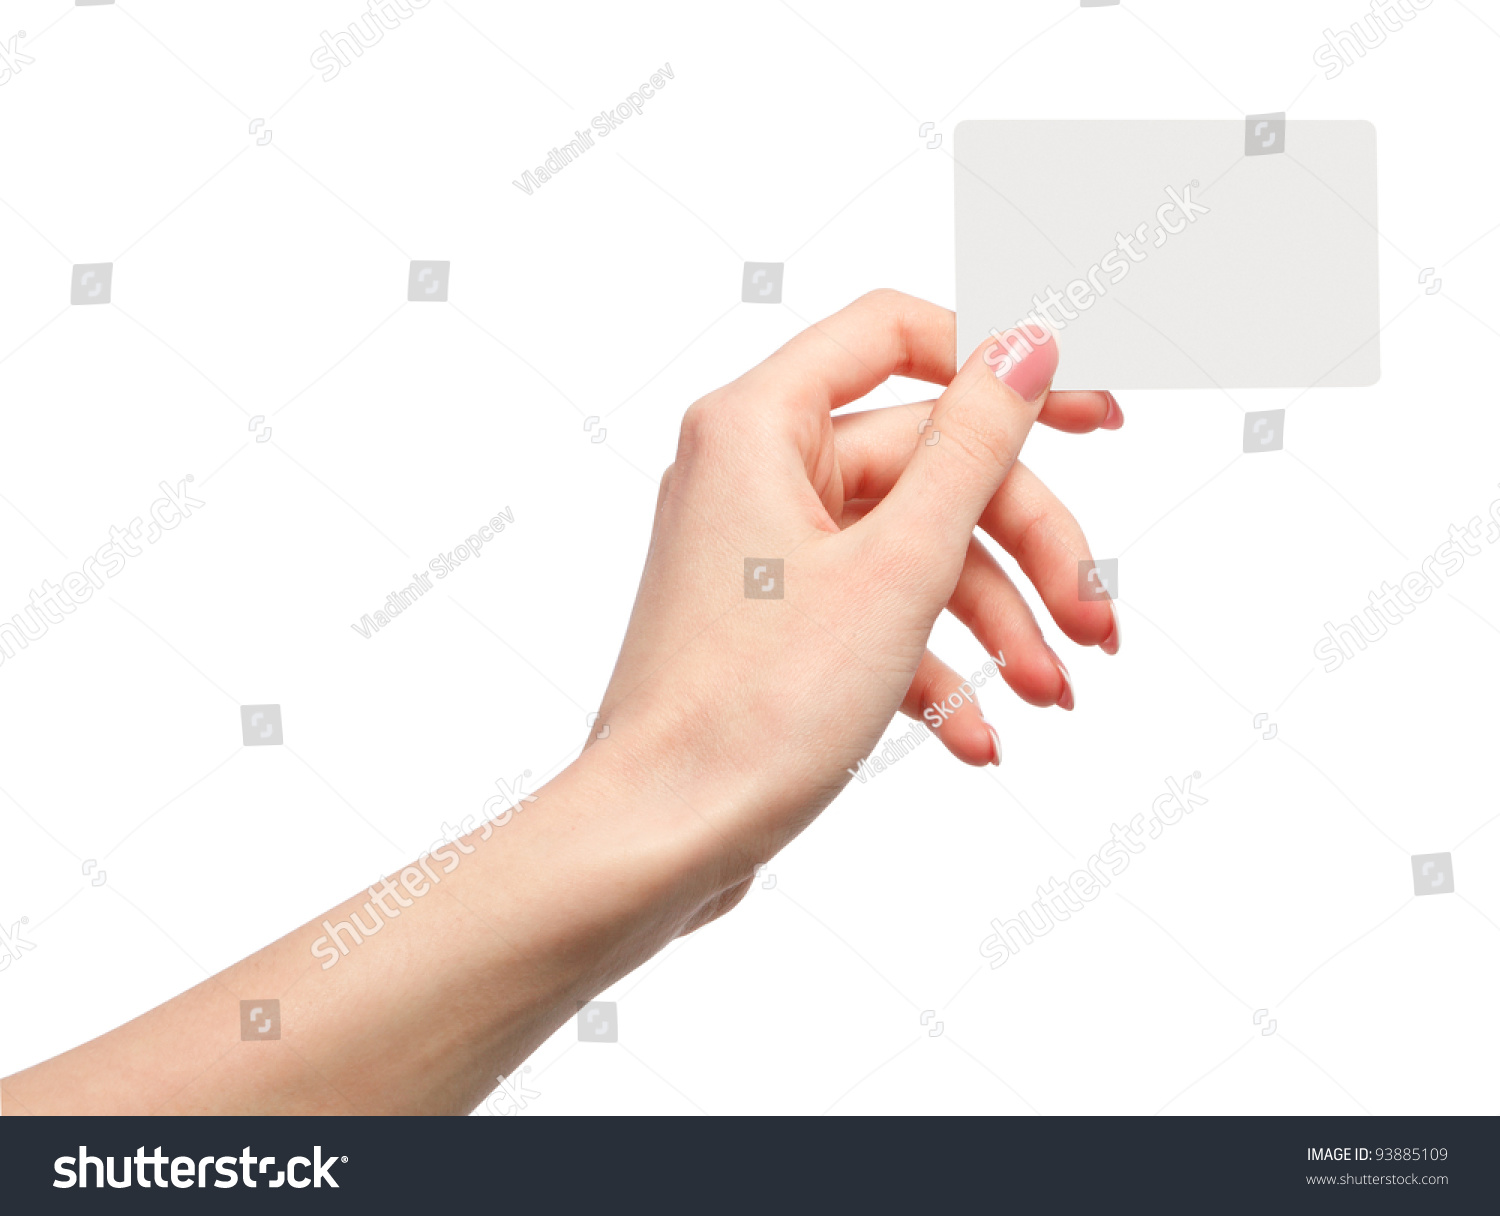 Technology Management Image: Female Hand Holding A Blank Business Card Stock Photo